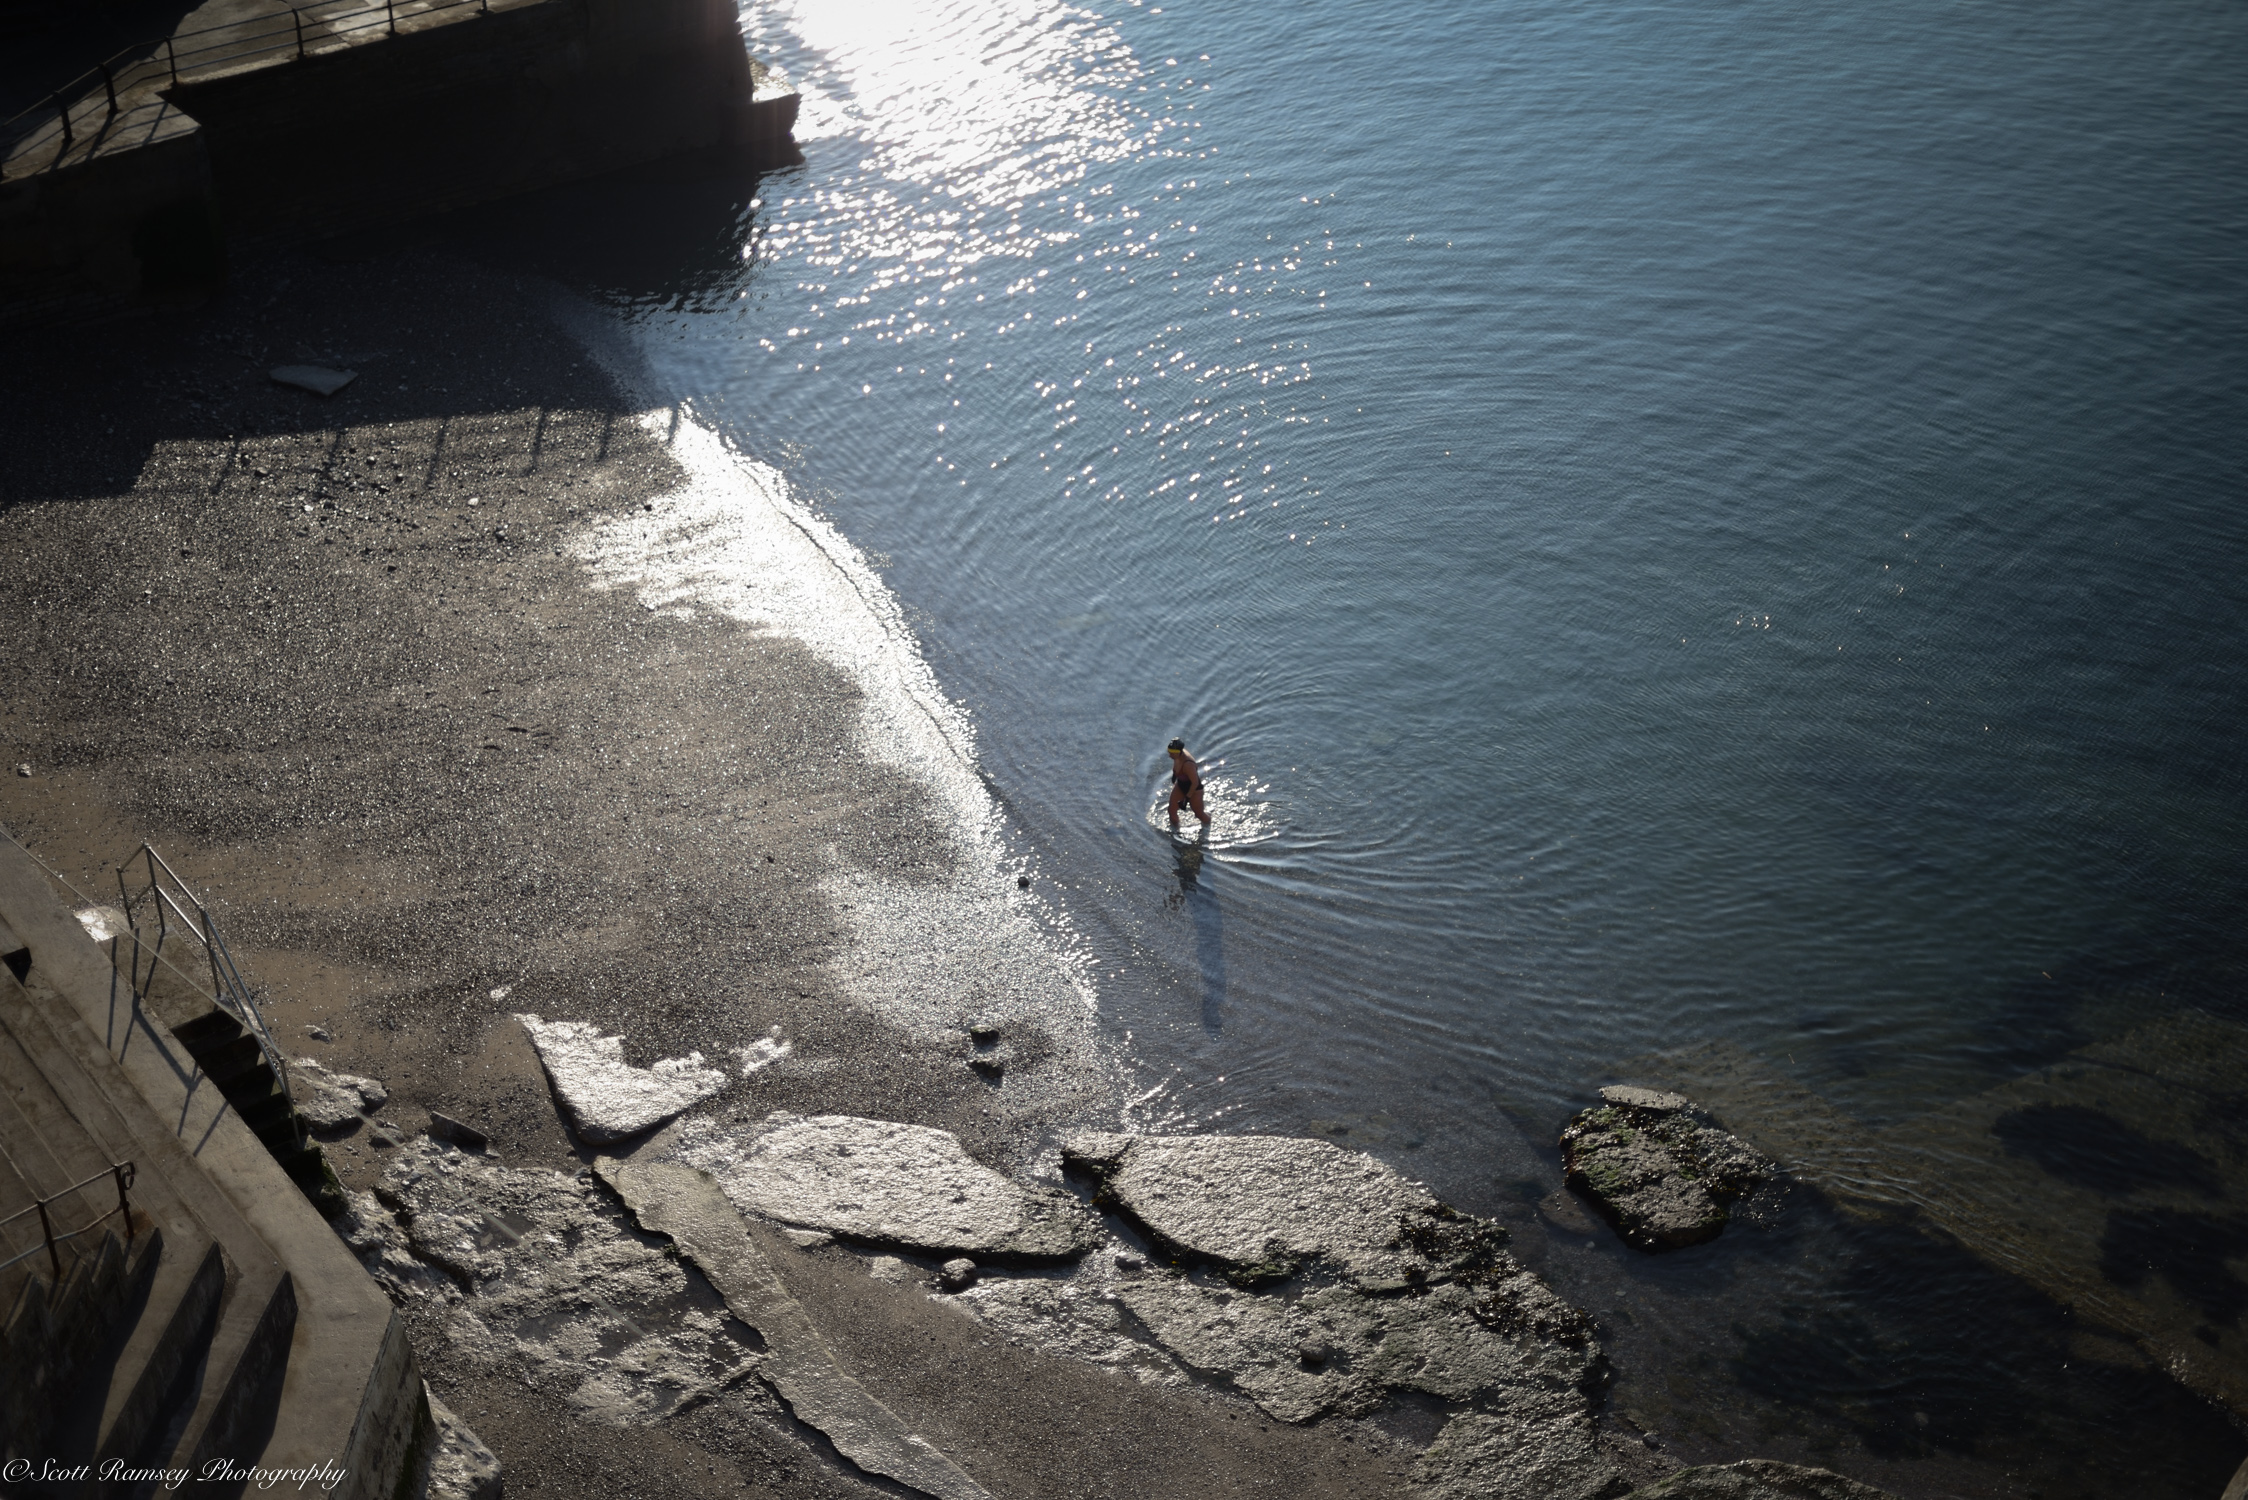 A swimmer emerges from the sea on to the beach at Plymouth Hoe, Devon. Photo © Scott Ramsey